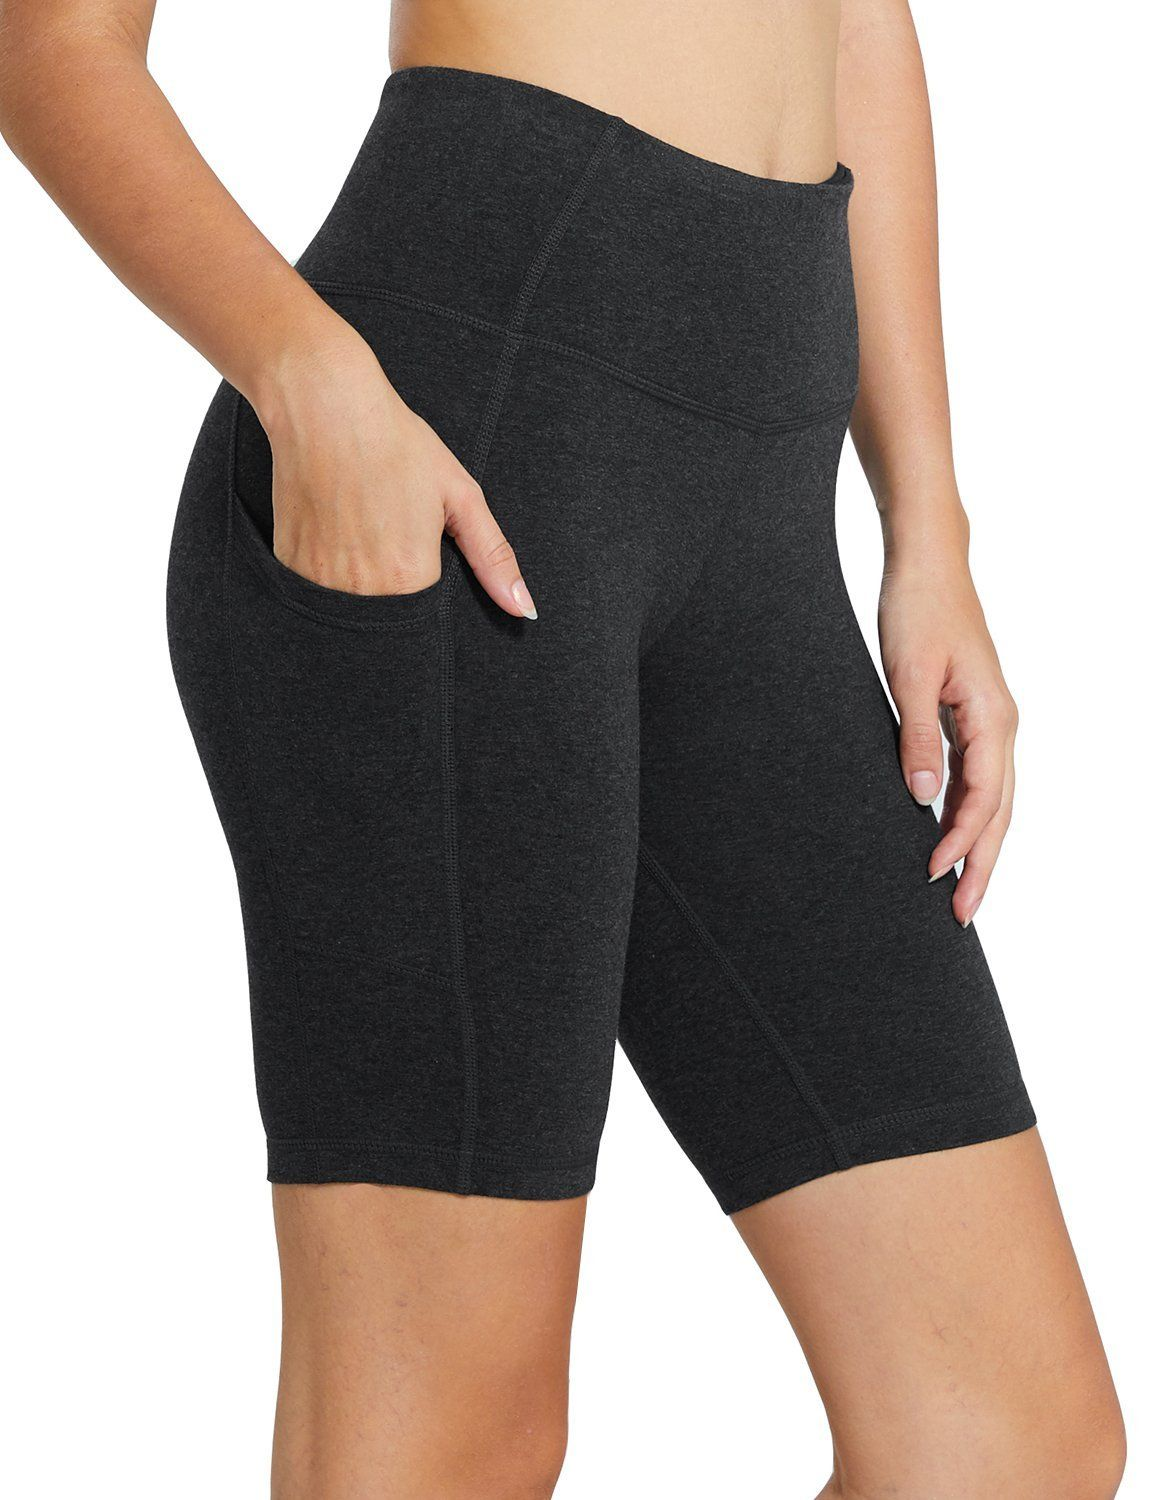 Sunday Oasis Womens Tights Highwaist Sports Yoga Workout Gym Running Trouser with Side Mobile Pockets